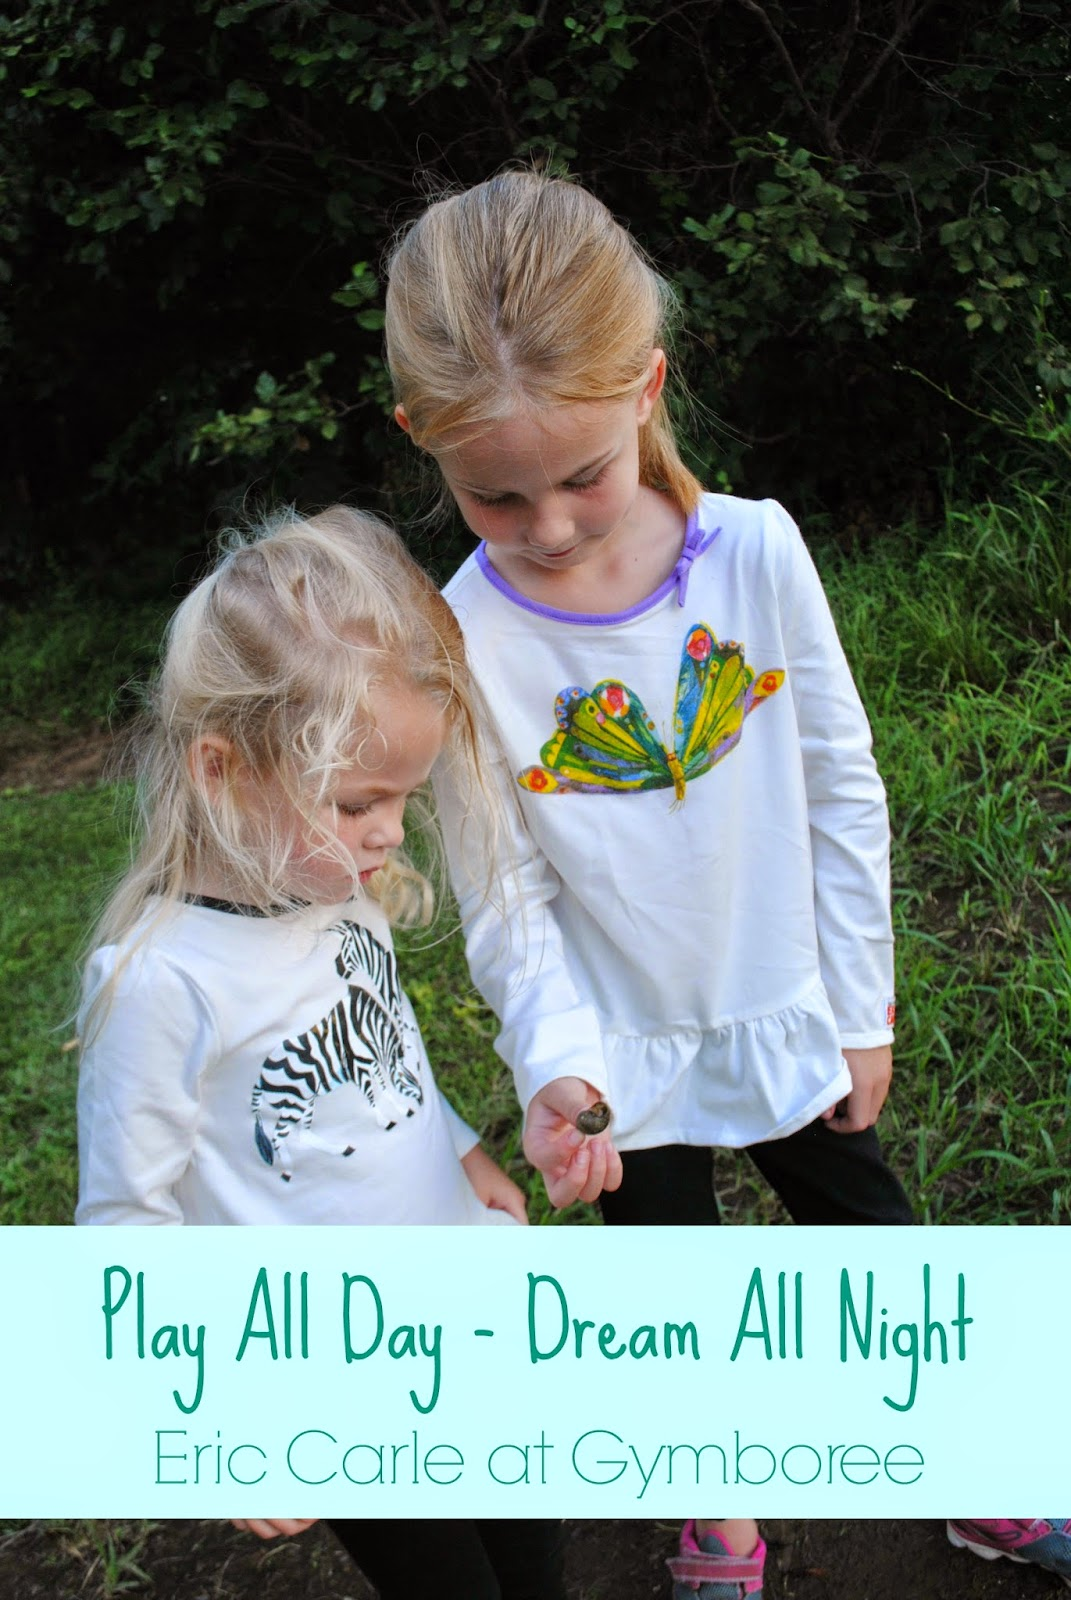 Play All Day Dream All Night Eric Carle at Gymboree